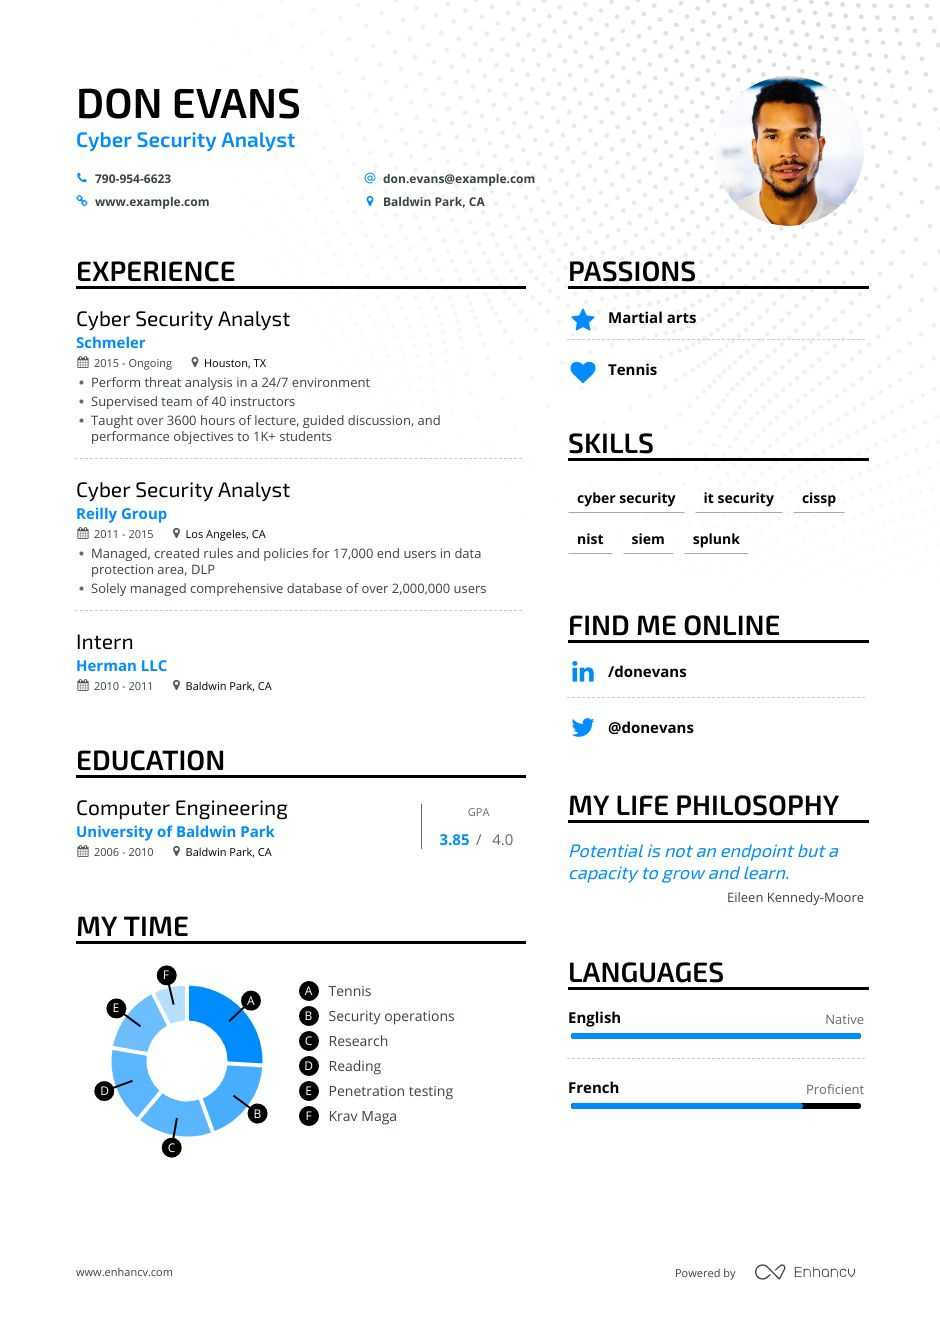 Cyber Security Analyst Resume Examples Guide & Pro Tips